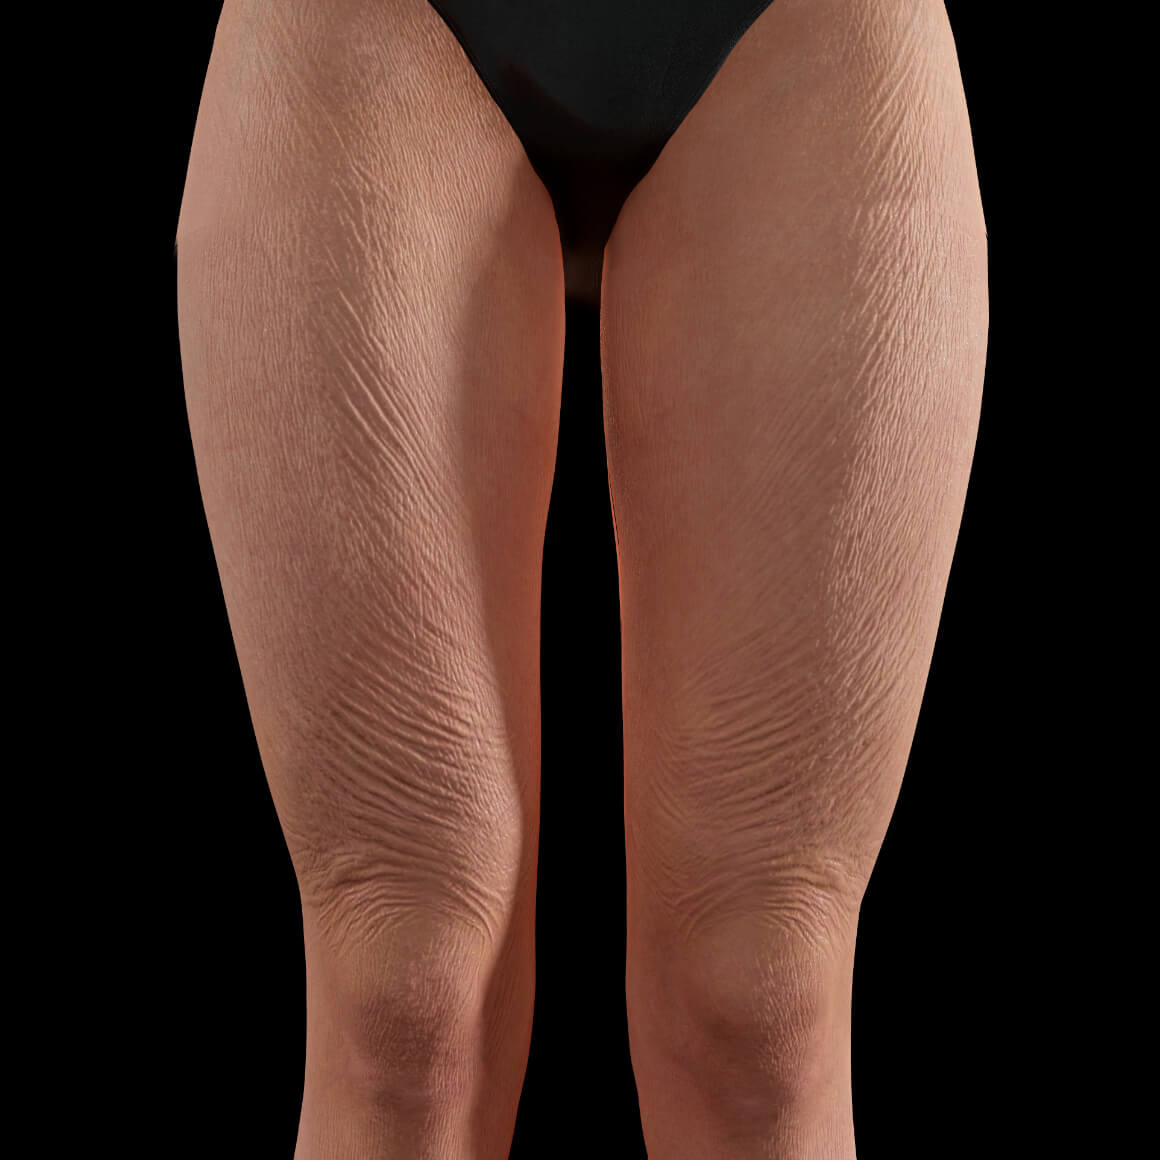 Anterior thighs of a Clinique Chloé female patient showing body skin laxity